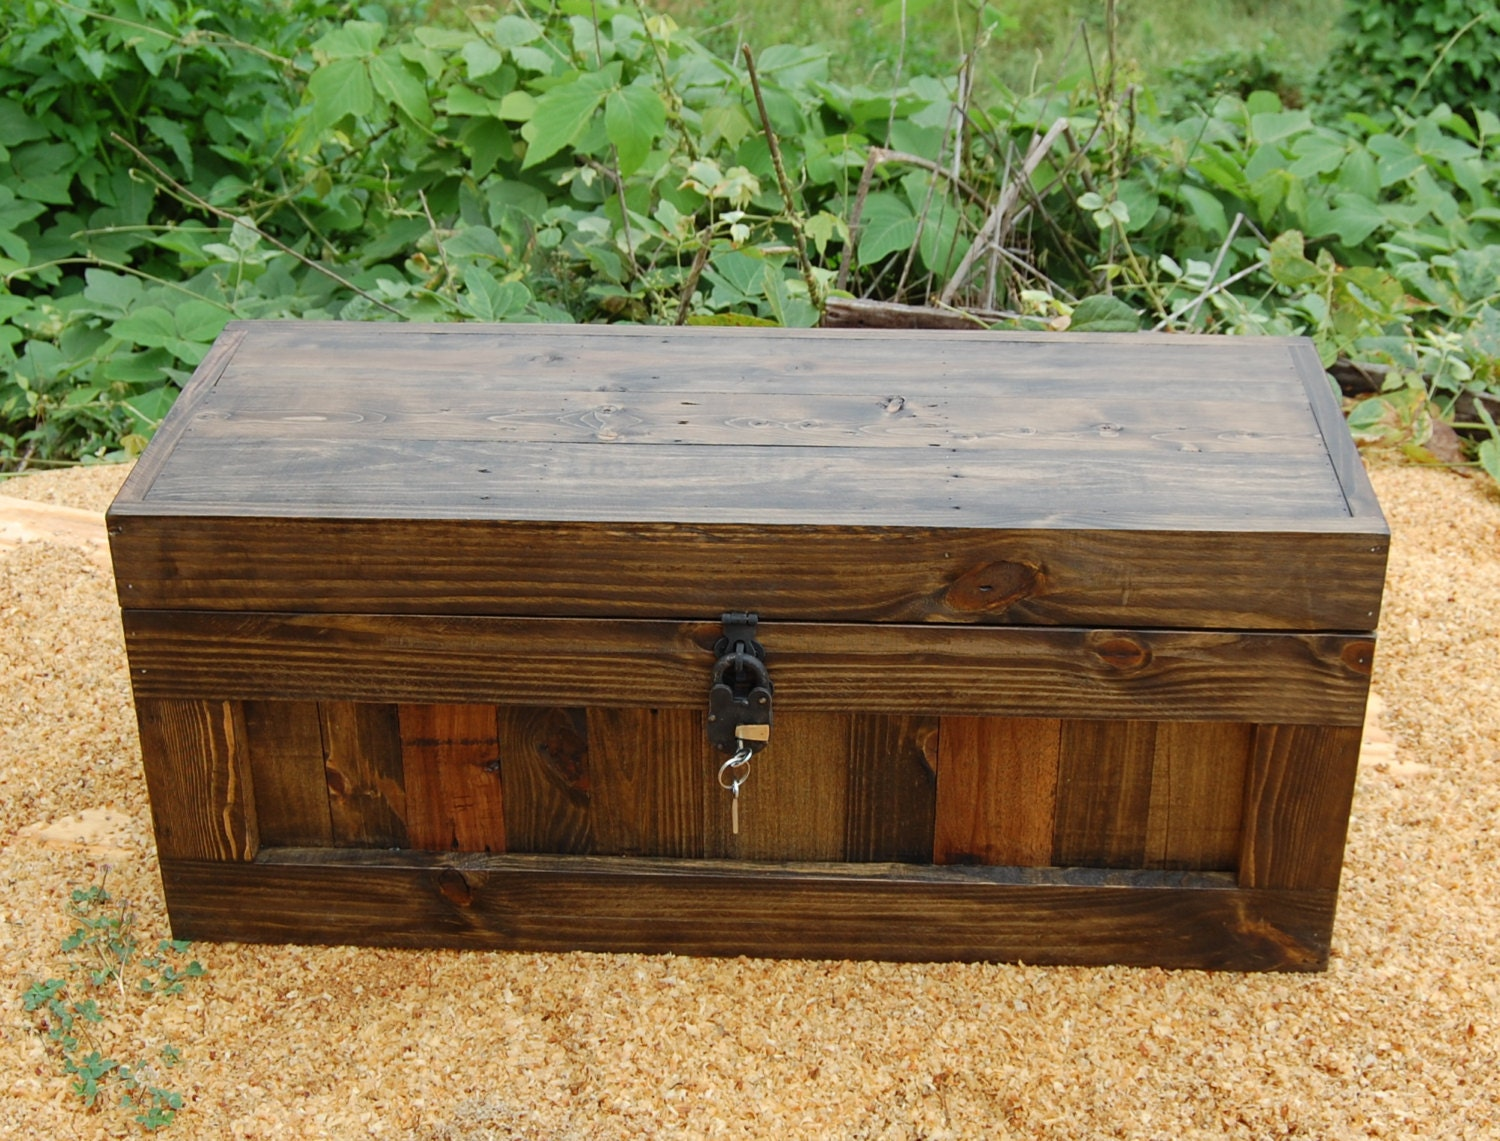 Jacobean Chest with Lock Hope Chest Wooden Trunk Coffee Table